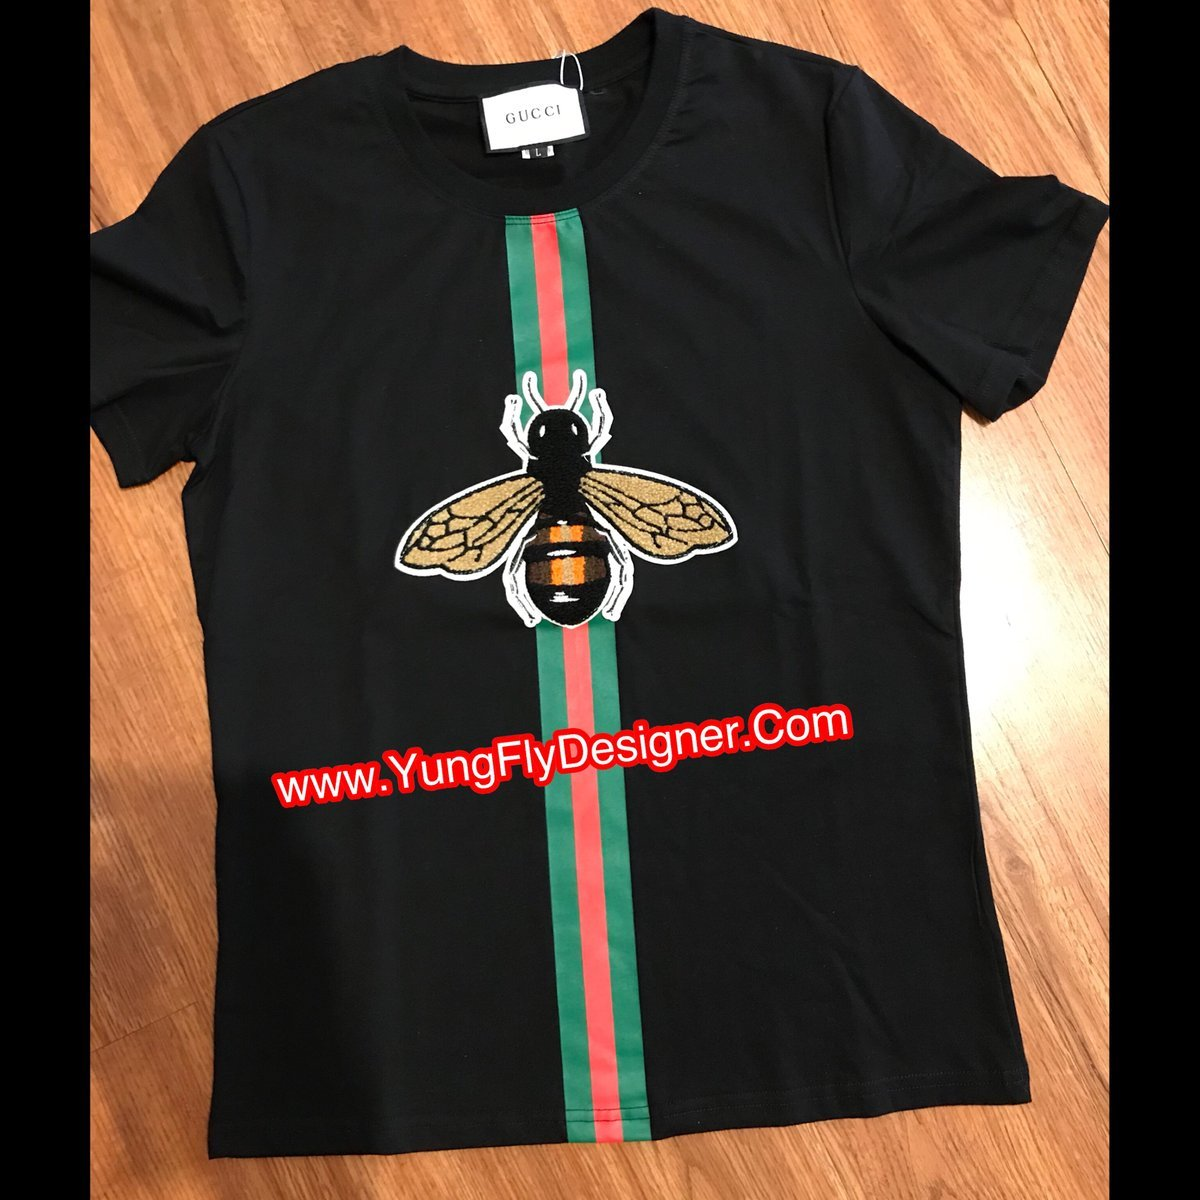 c7e2068b5c0d Gucci Bee T-Shirt - $75.00 – Young Fly Designer